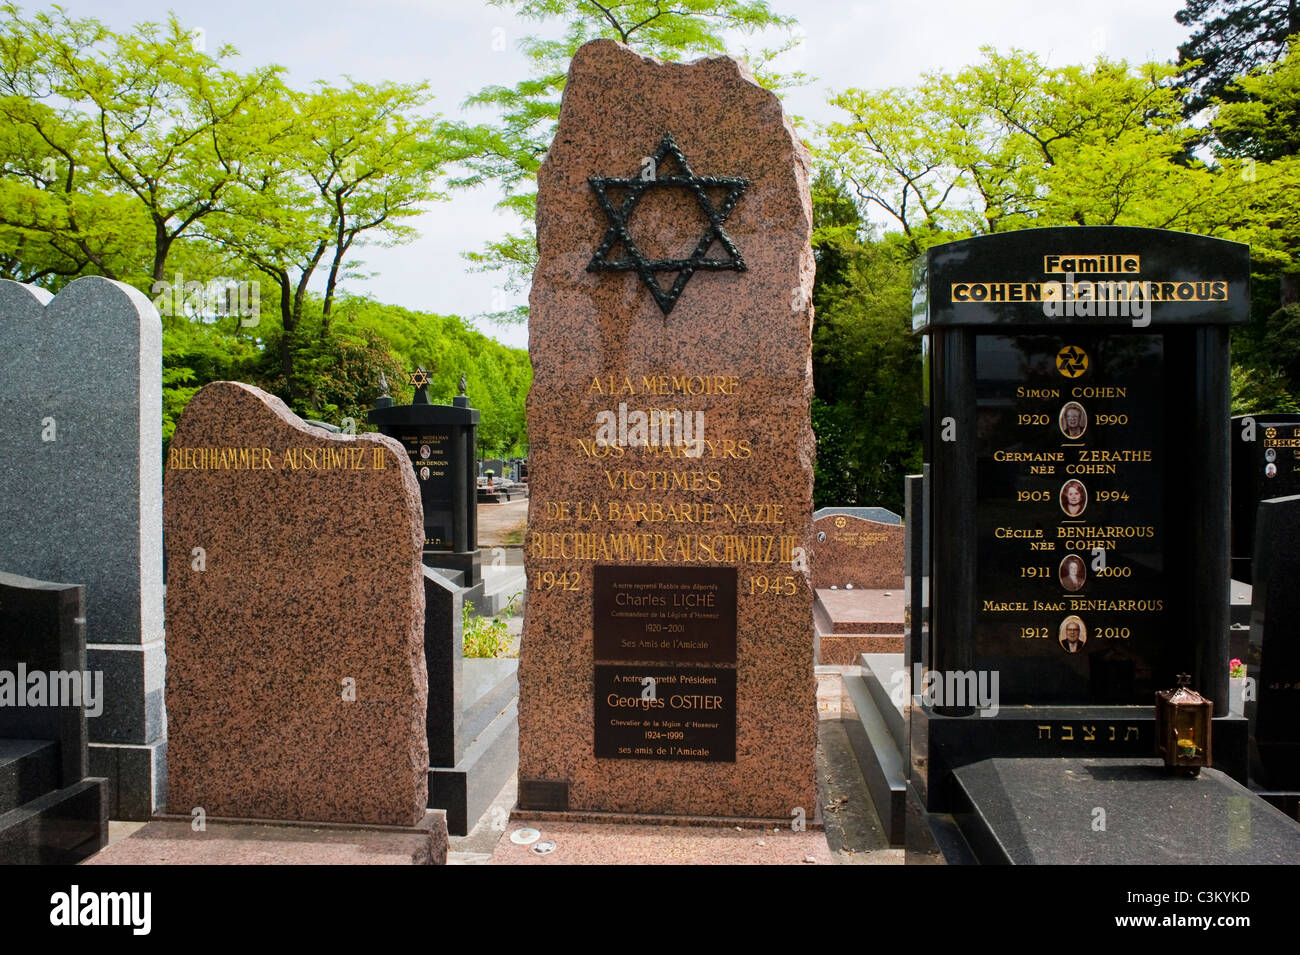 Paris, France, Memorial to Jewish Victims of German Concentration Camps in WWII, Tomb in Bagneaux Cemetery, - Stock Image